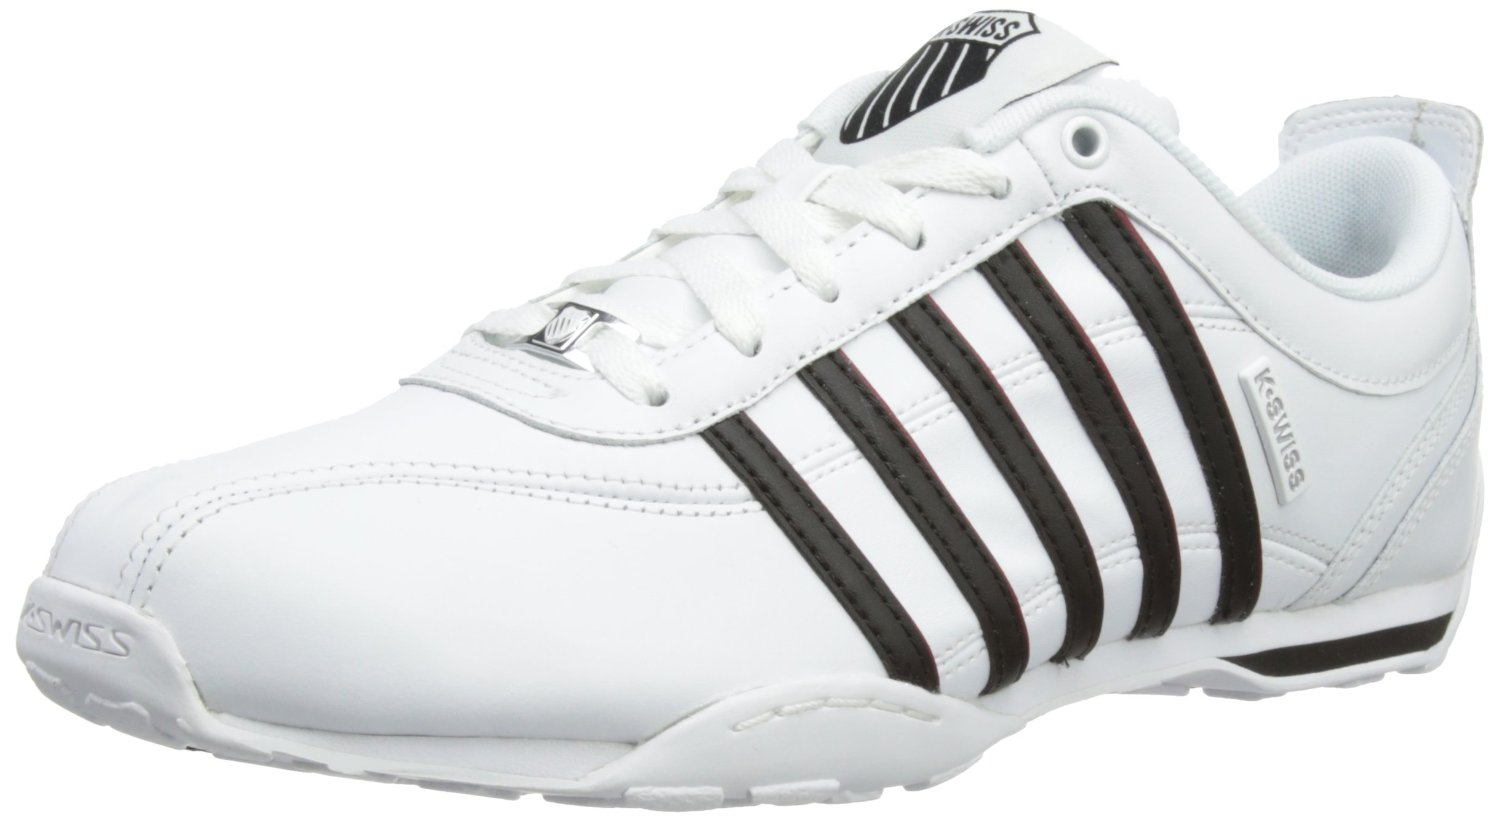 k swiss arvee 1 5 white black red new mens leather shoes trainers boots ebay. Black Bedroom Furniture Sets. Home Design Ideas